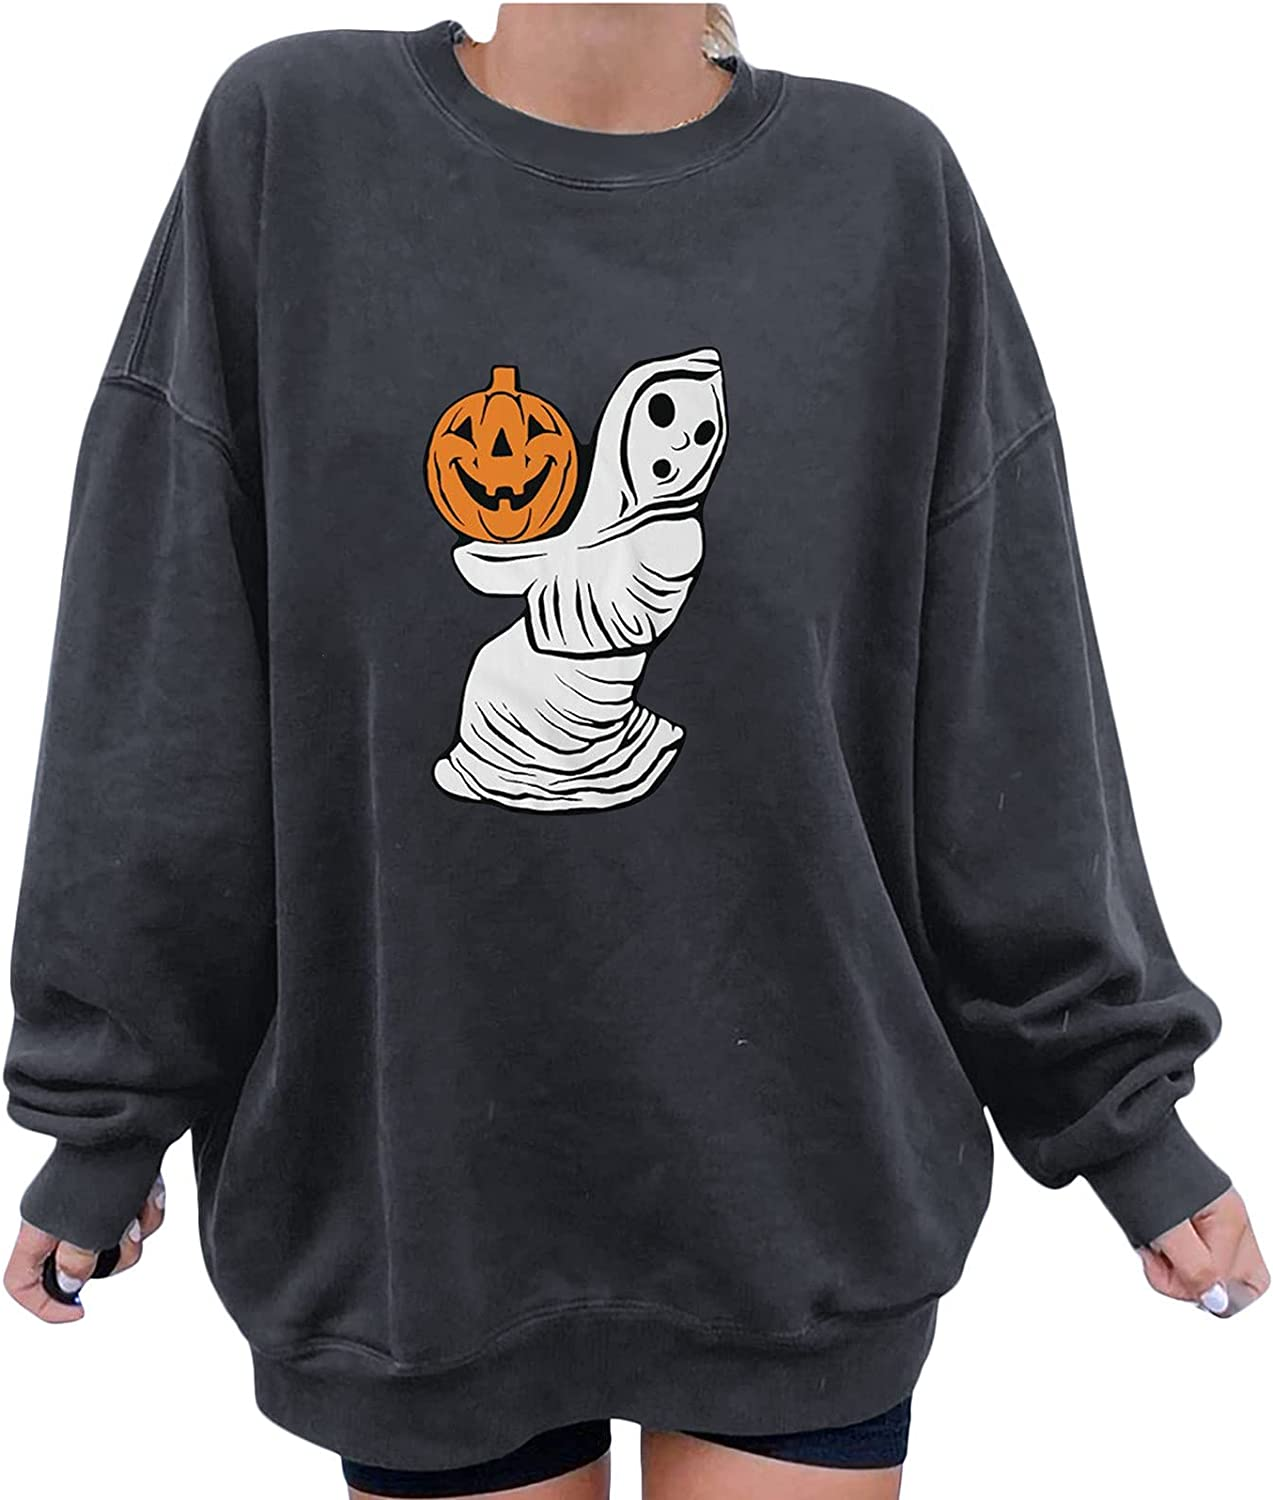 Sweatshirts for Women Halloween Graphic Pumpkin Printed Pullover Long Sleeve Round Neck Casual Loose Tops Jumper Blouse Shirt